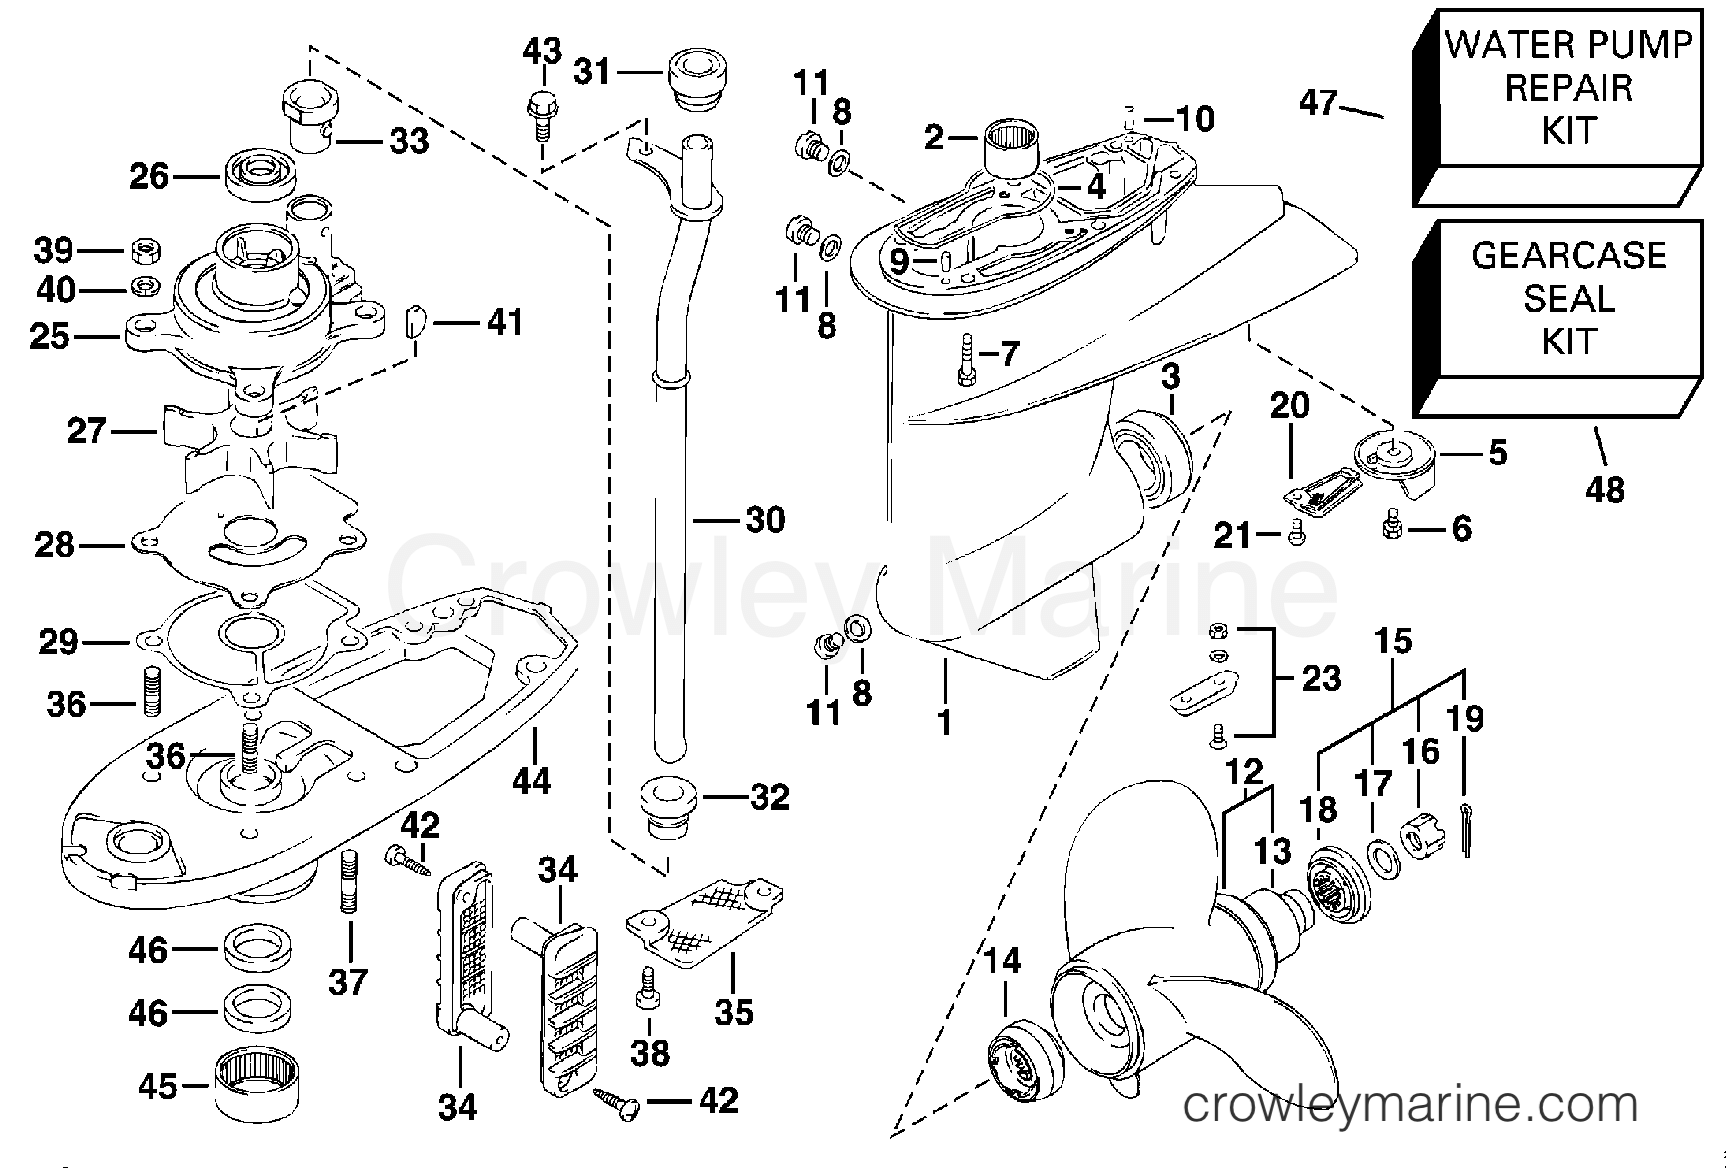 Wiring Diagram Yamaha F60 yamaha rx 100 wiring diagram ... on